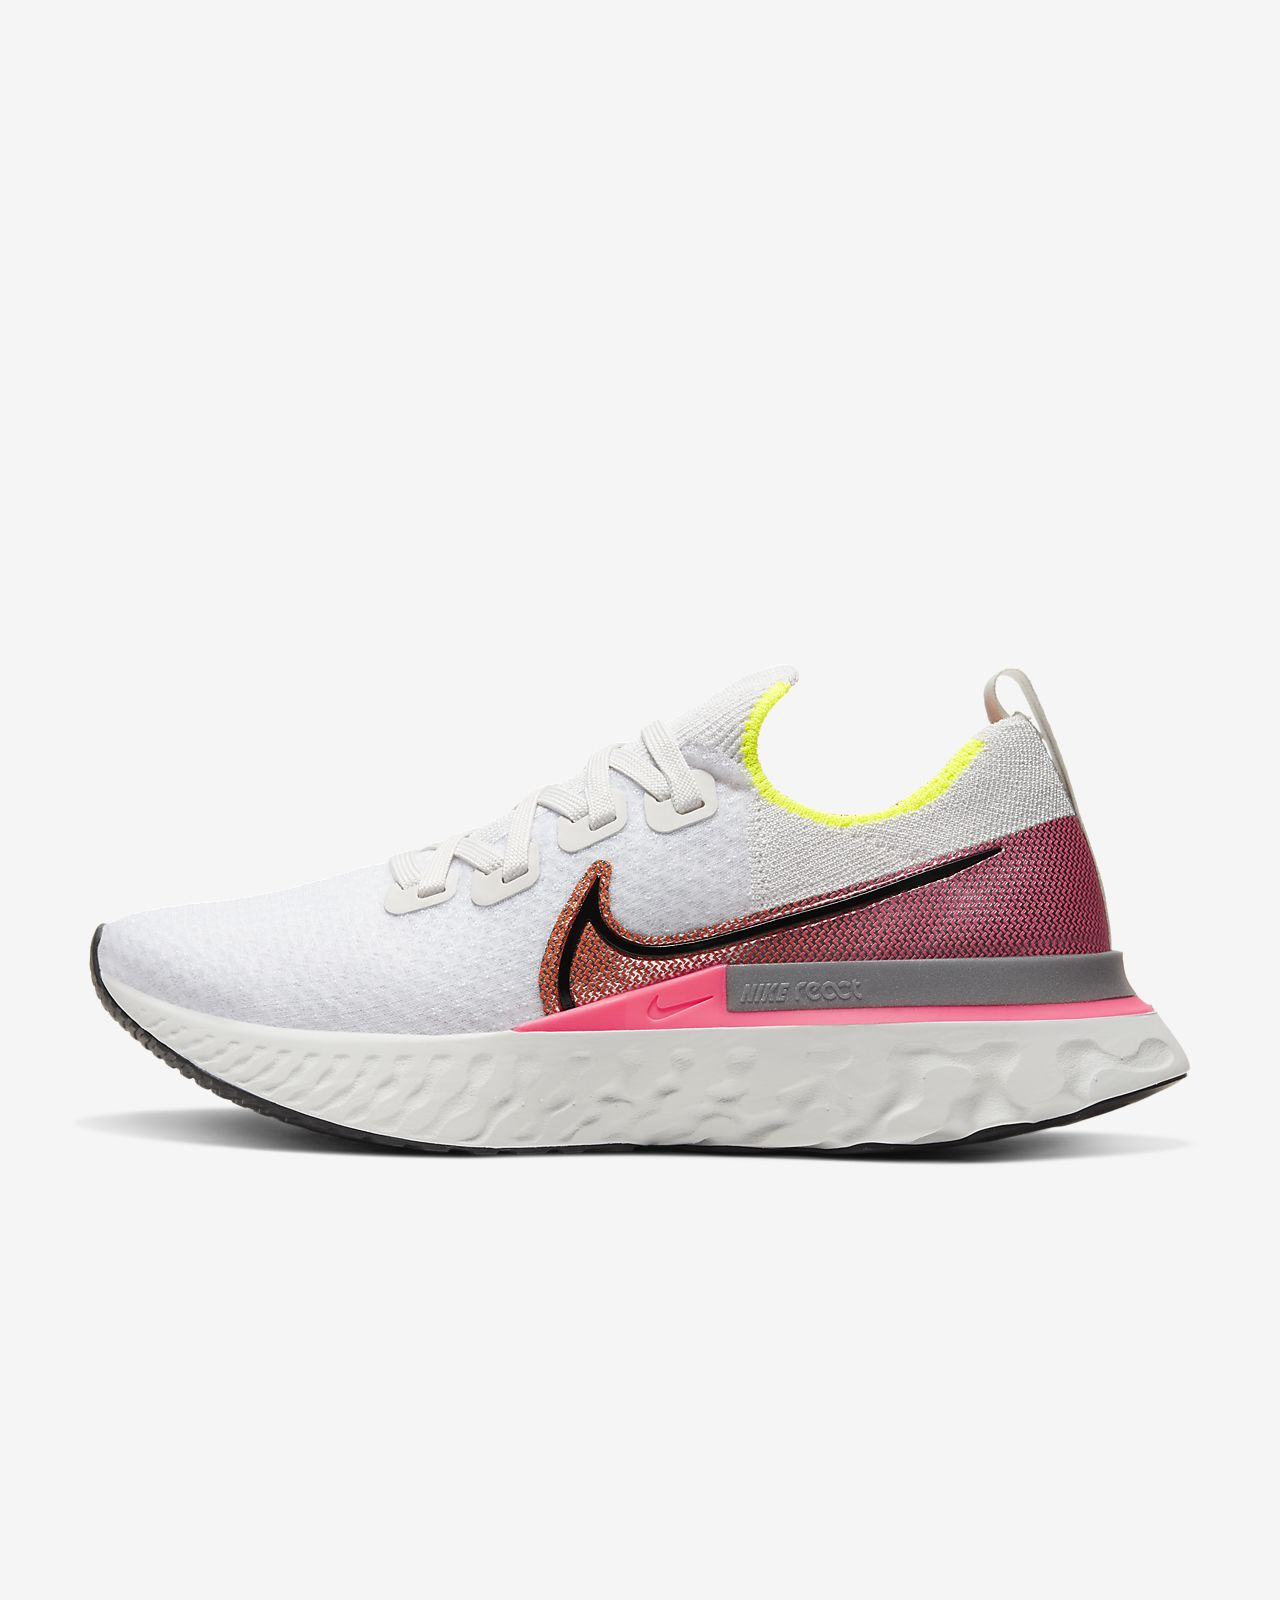 nike flyknit running shoes for sale, NIKE PERFORMANCE FC